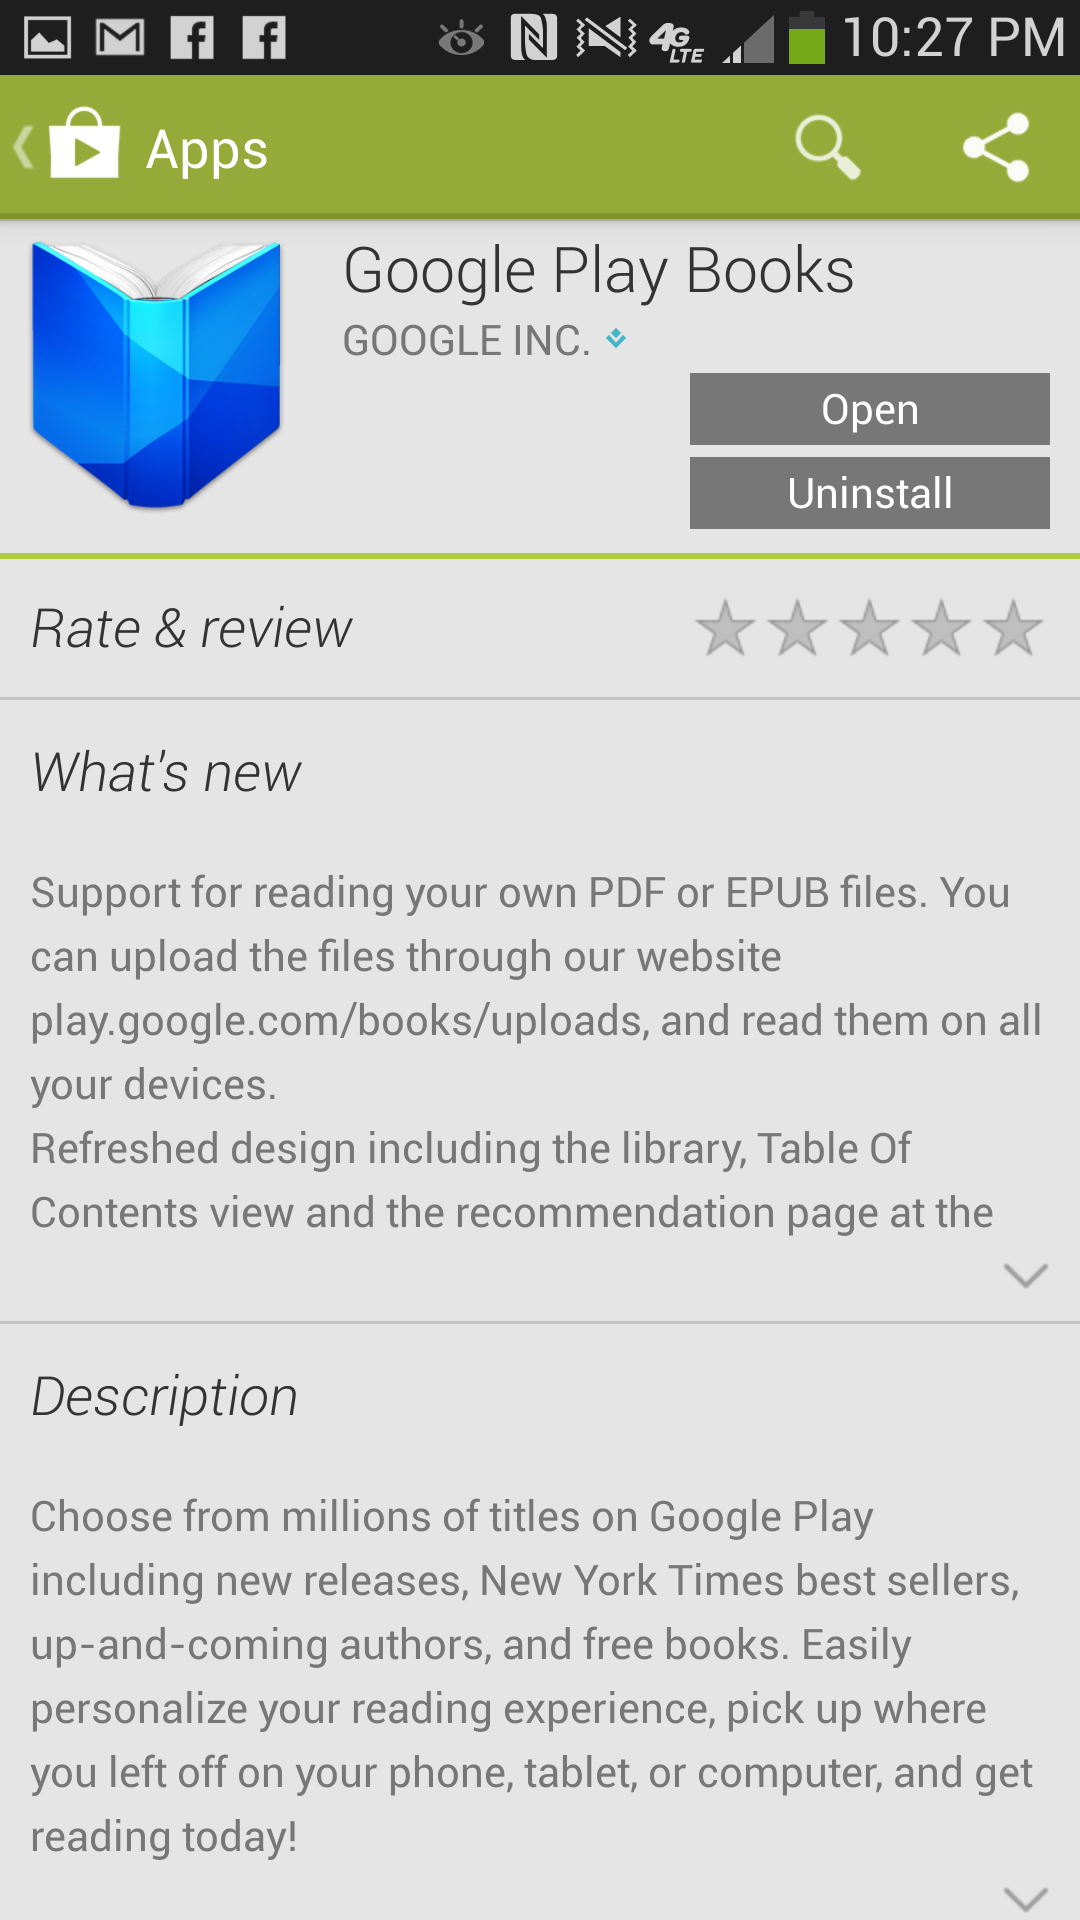 google play books updated to allow synchronizable user